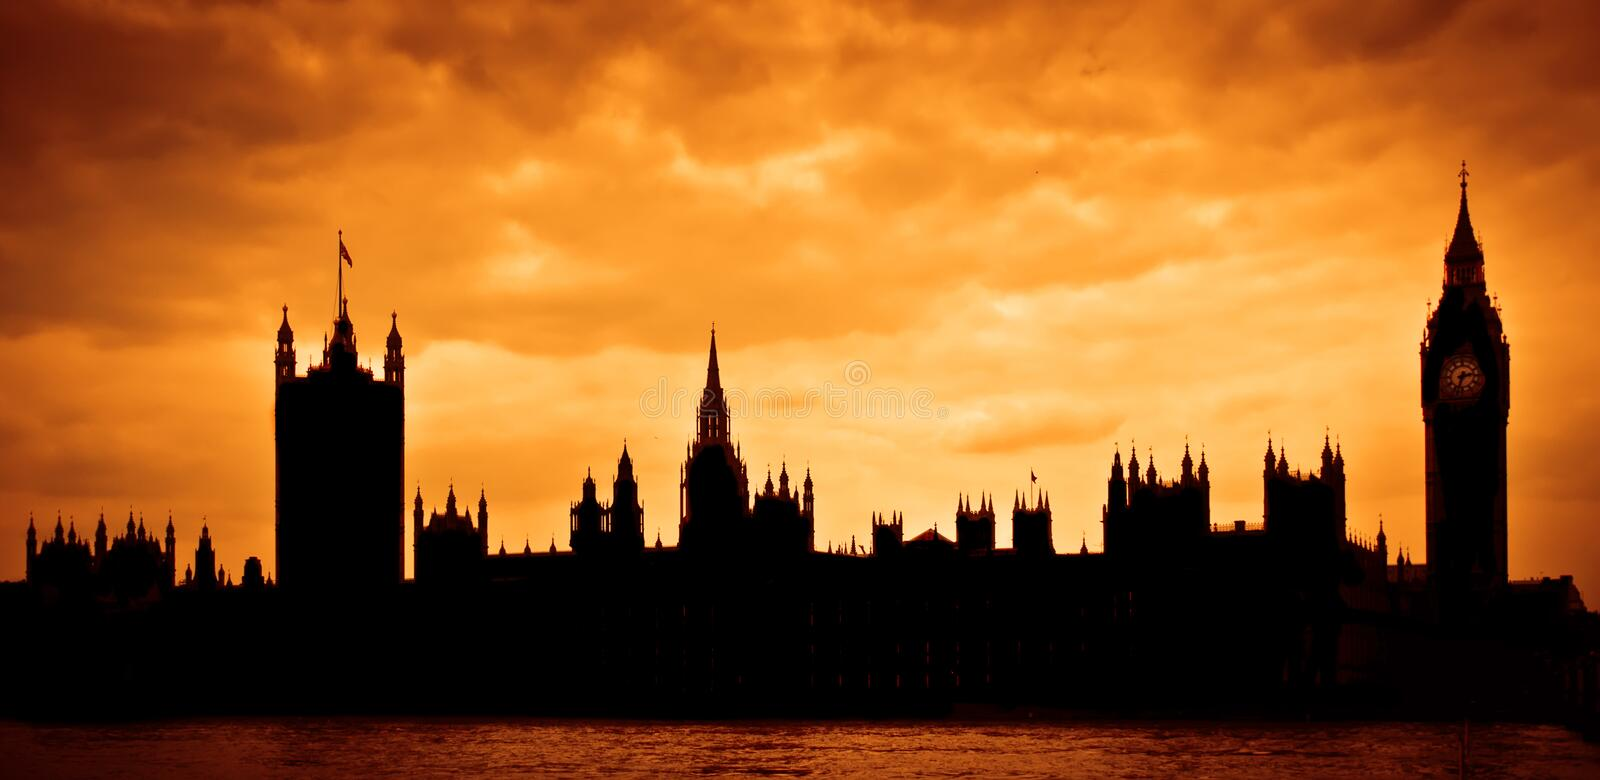 Download Houses Of Parliament At Sunset Stock Photo - Image of palace, history: 20347736